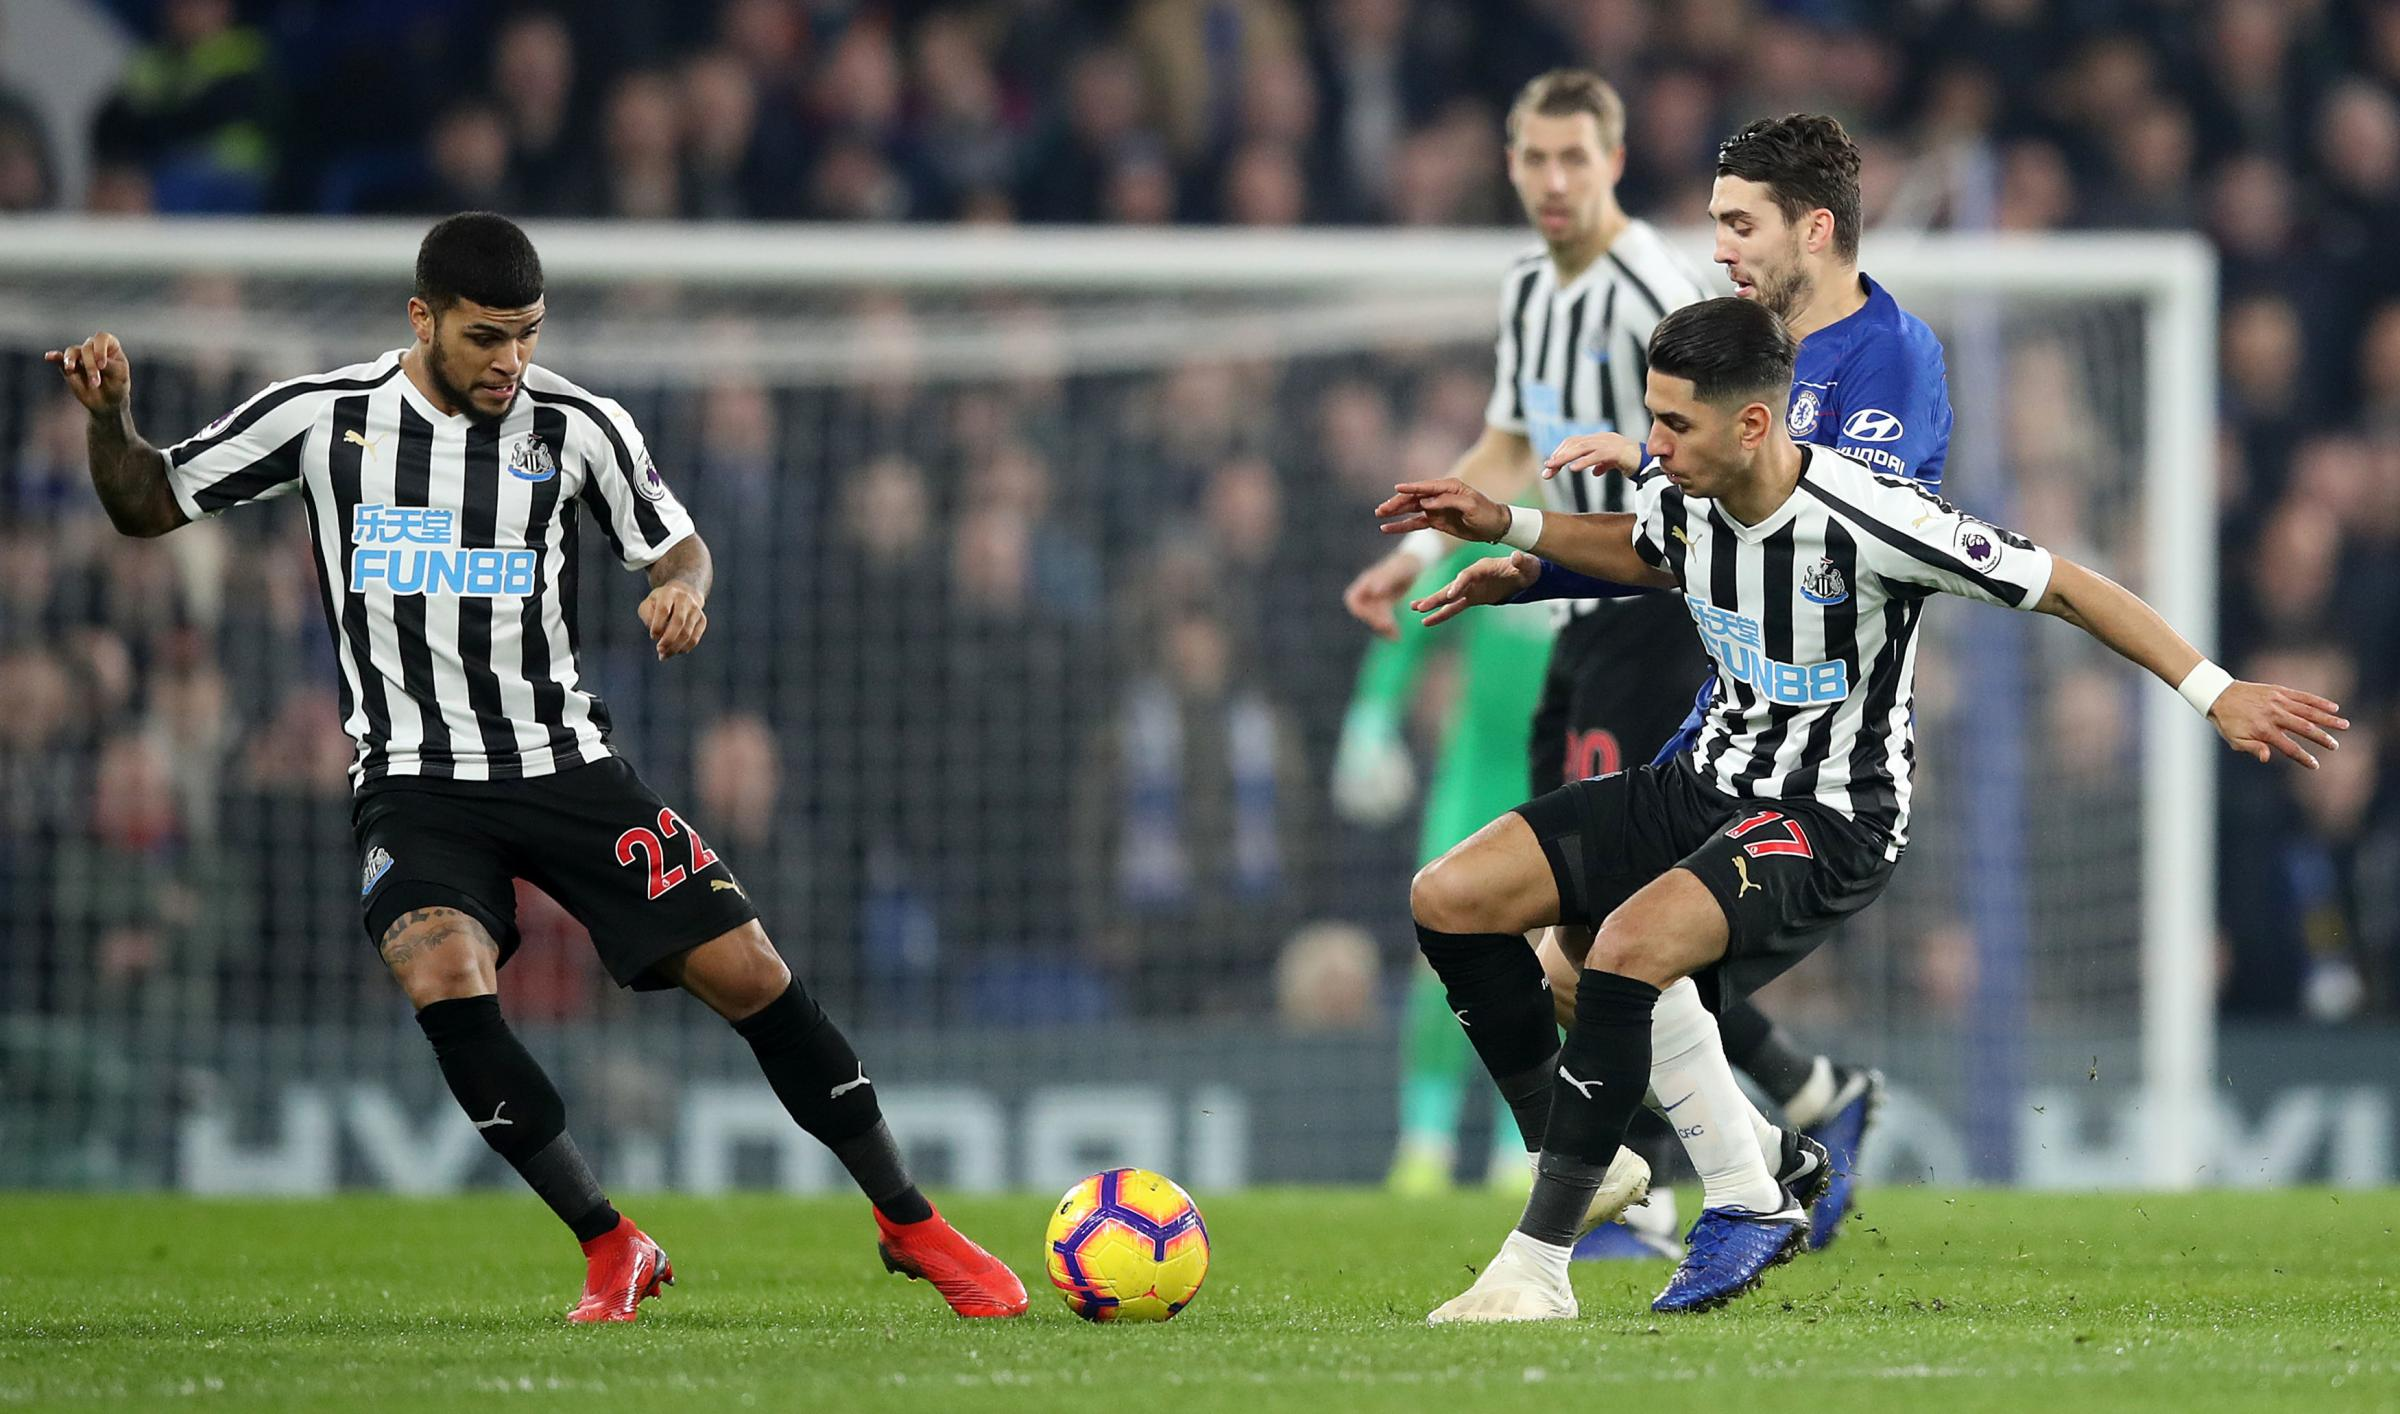 Newcastle United's Ayoze Perez (right) passes to team-mate DeAndre Yedlin during the Premier League match at Stamford Bridge, London. PRESS ASSOCIATION Photo. Picture date: Saturday January 12, 2019. See PA story SOCCER Chelsea. Photo credit should re